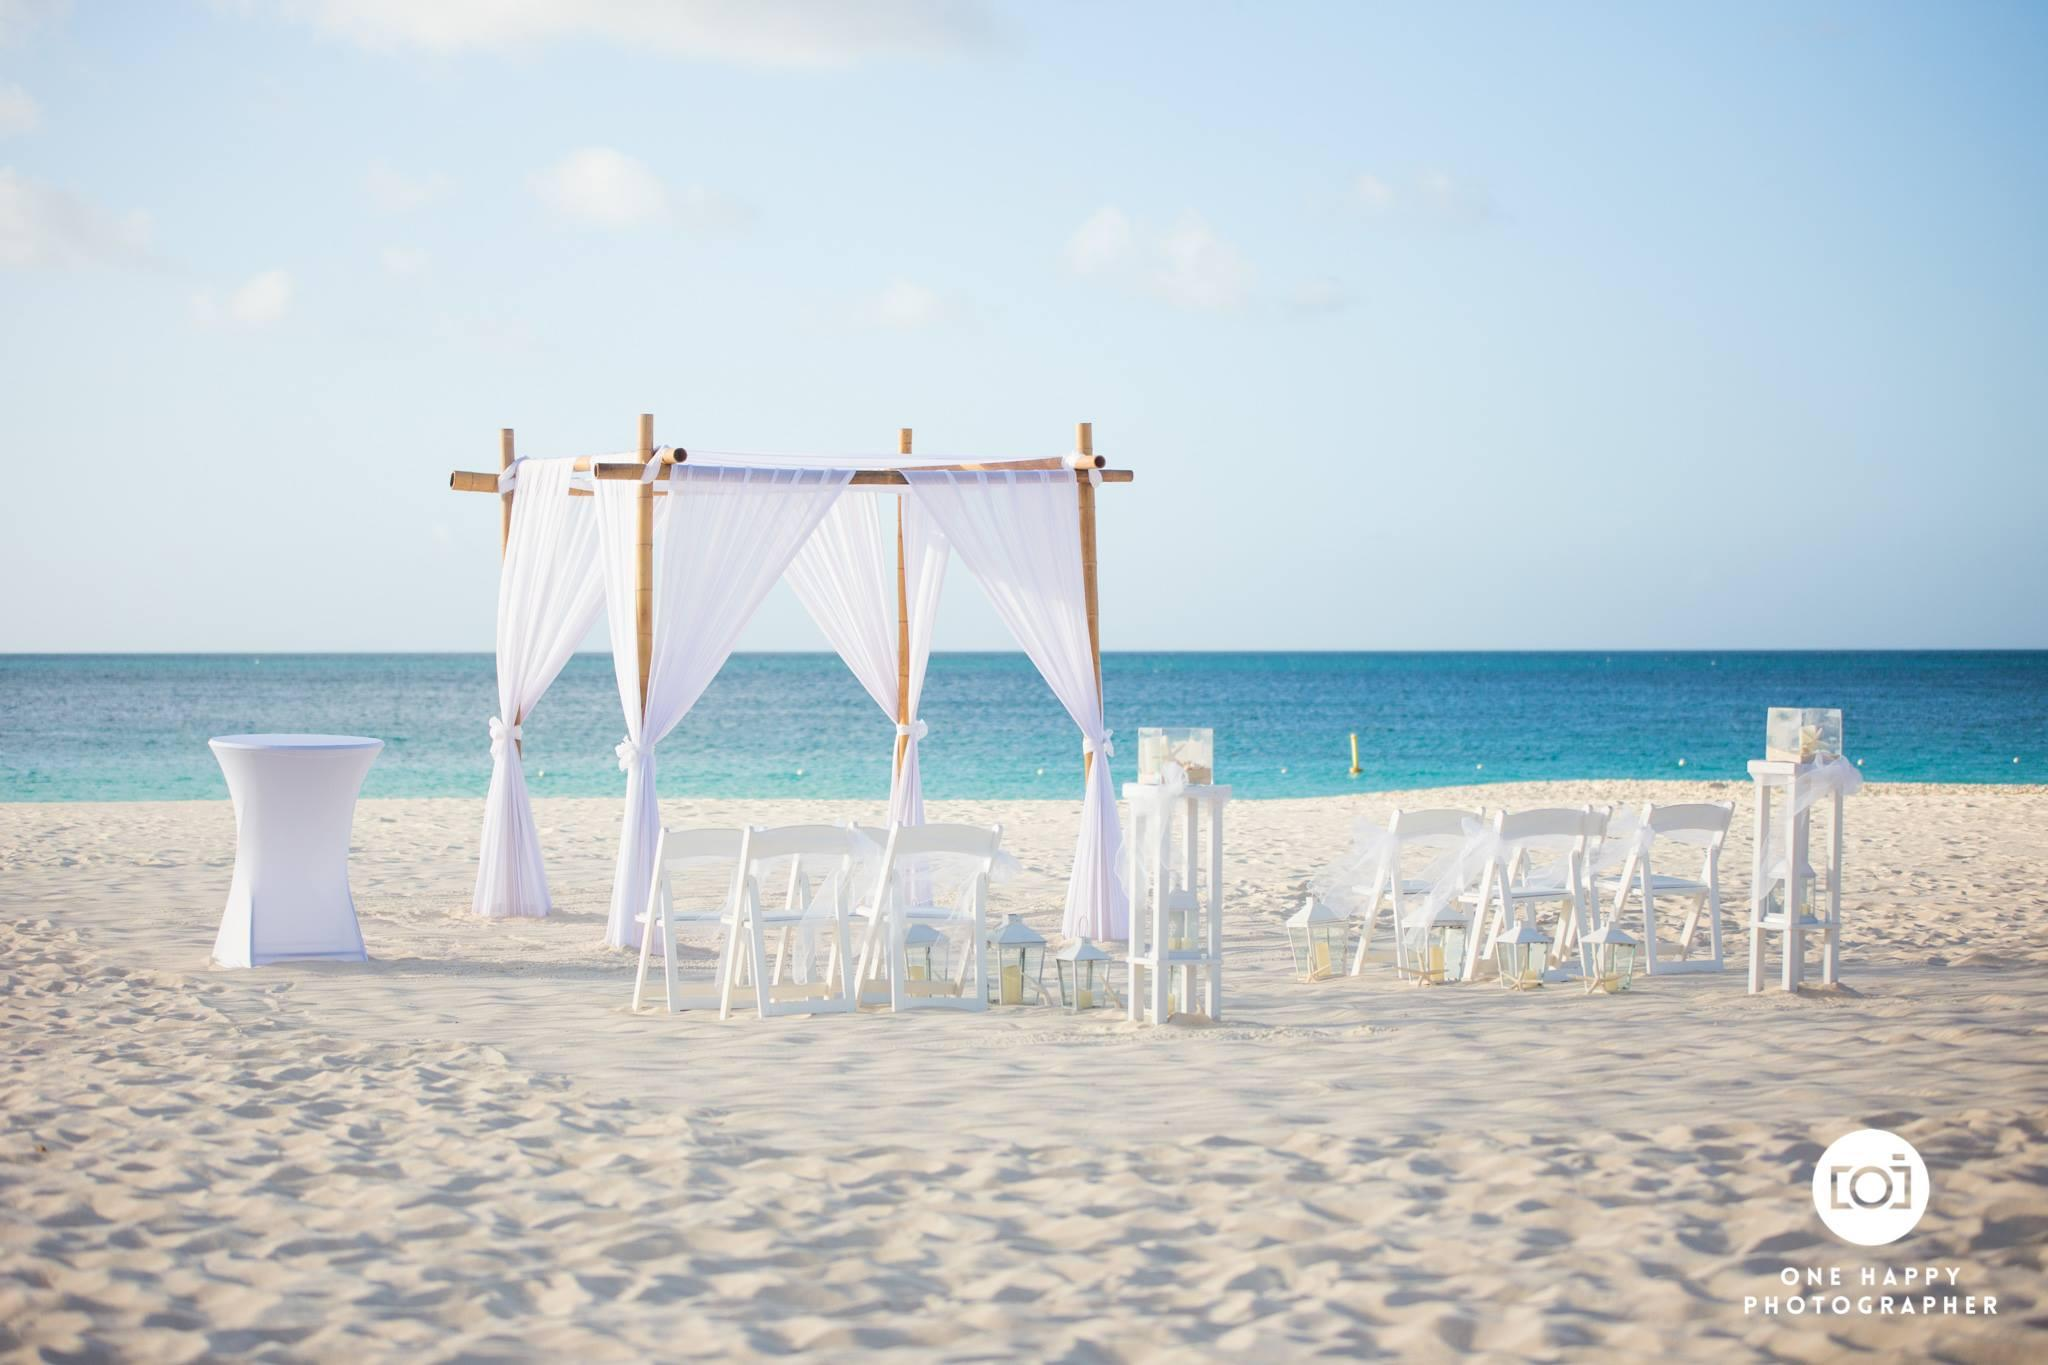 Aruba, aruba wedding, destination wedding, real wedding, wedding story, one happy island, travel, caribbean wedding, wedding planning, wedding photography